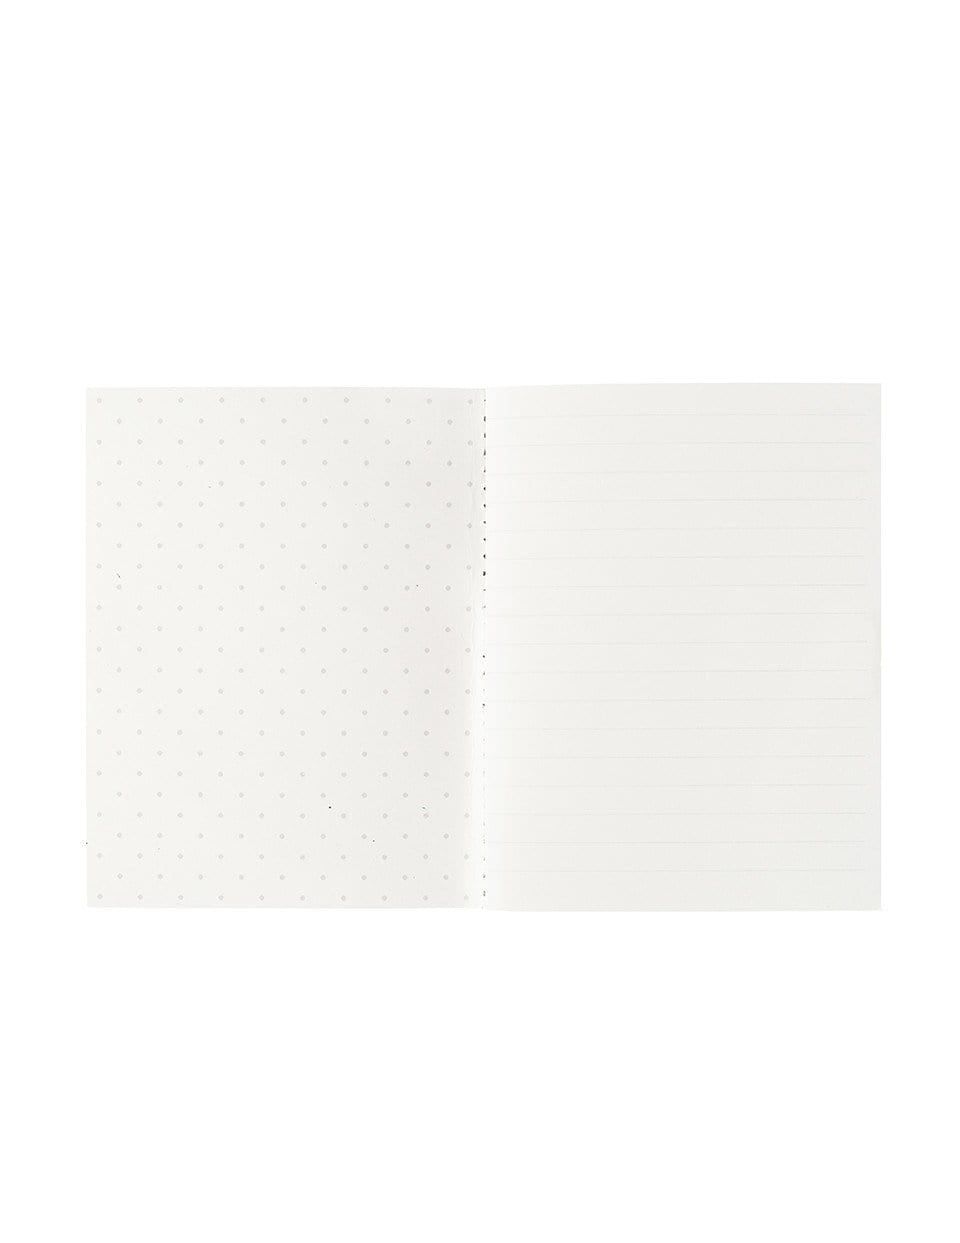 A6 Notebook Set 2PK: Pink Floral Polka Dot | Blushing Confetti